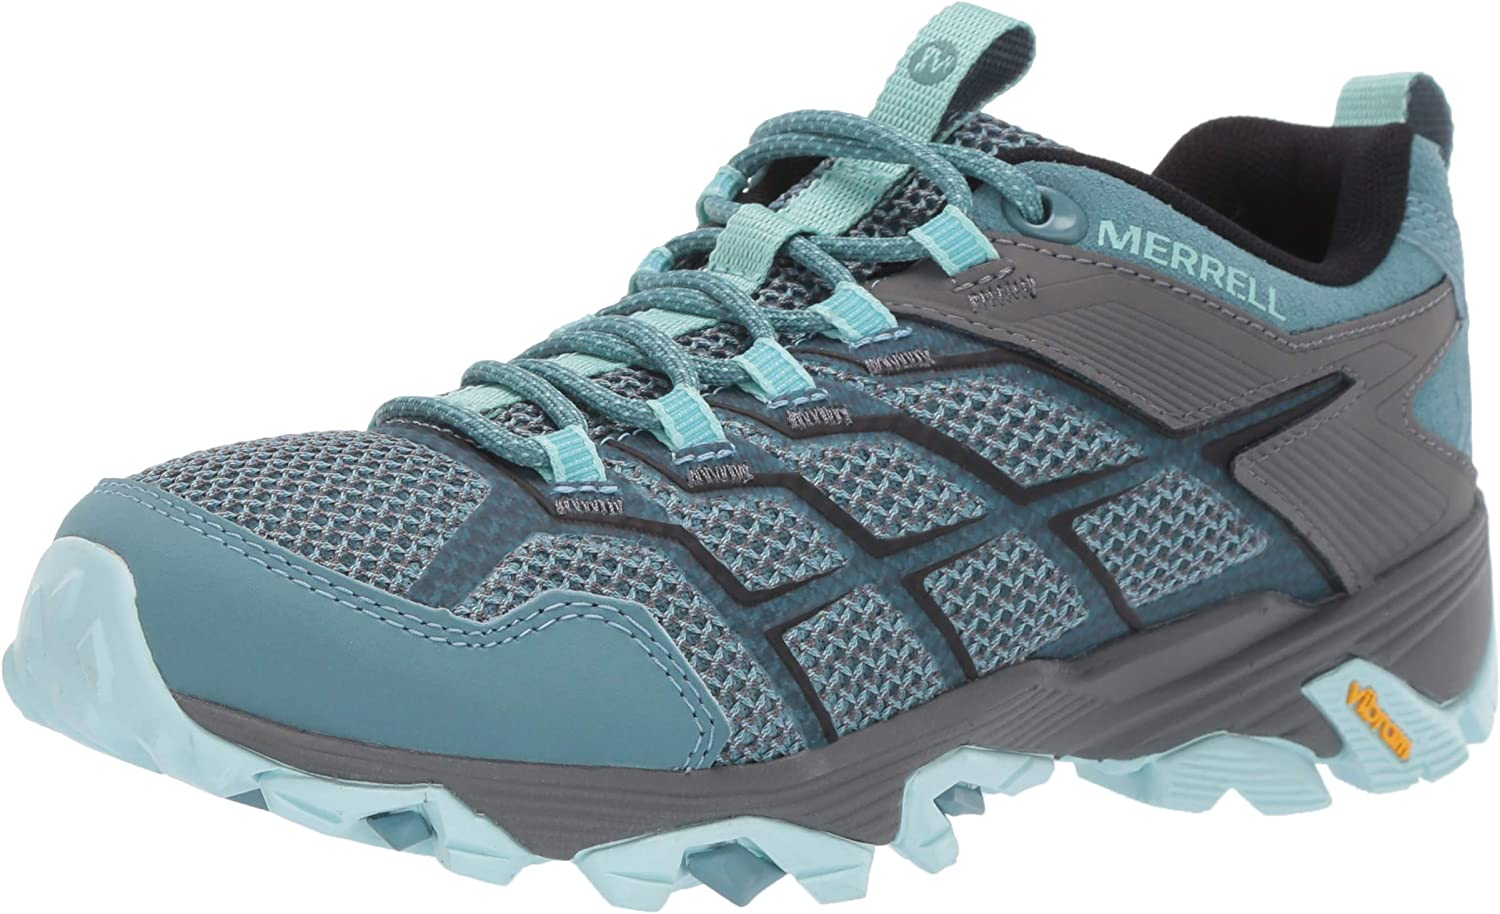 Merrell Women's Moab FST 2 Athletic shoes